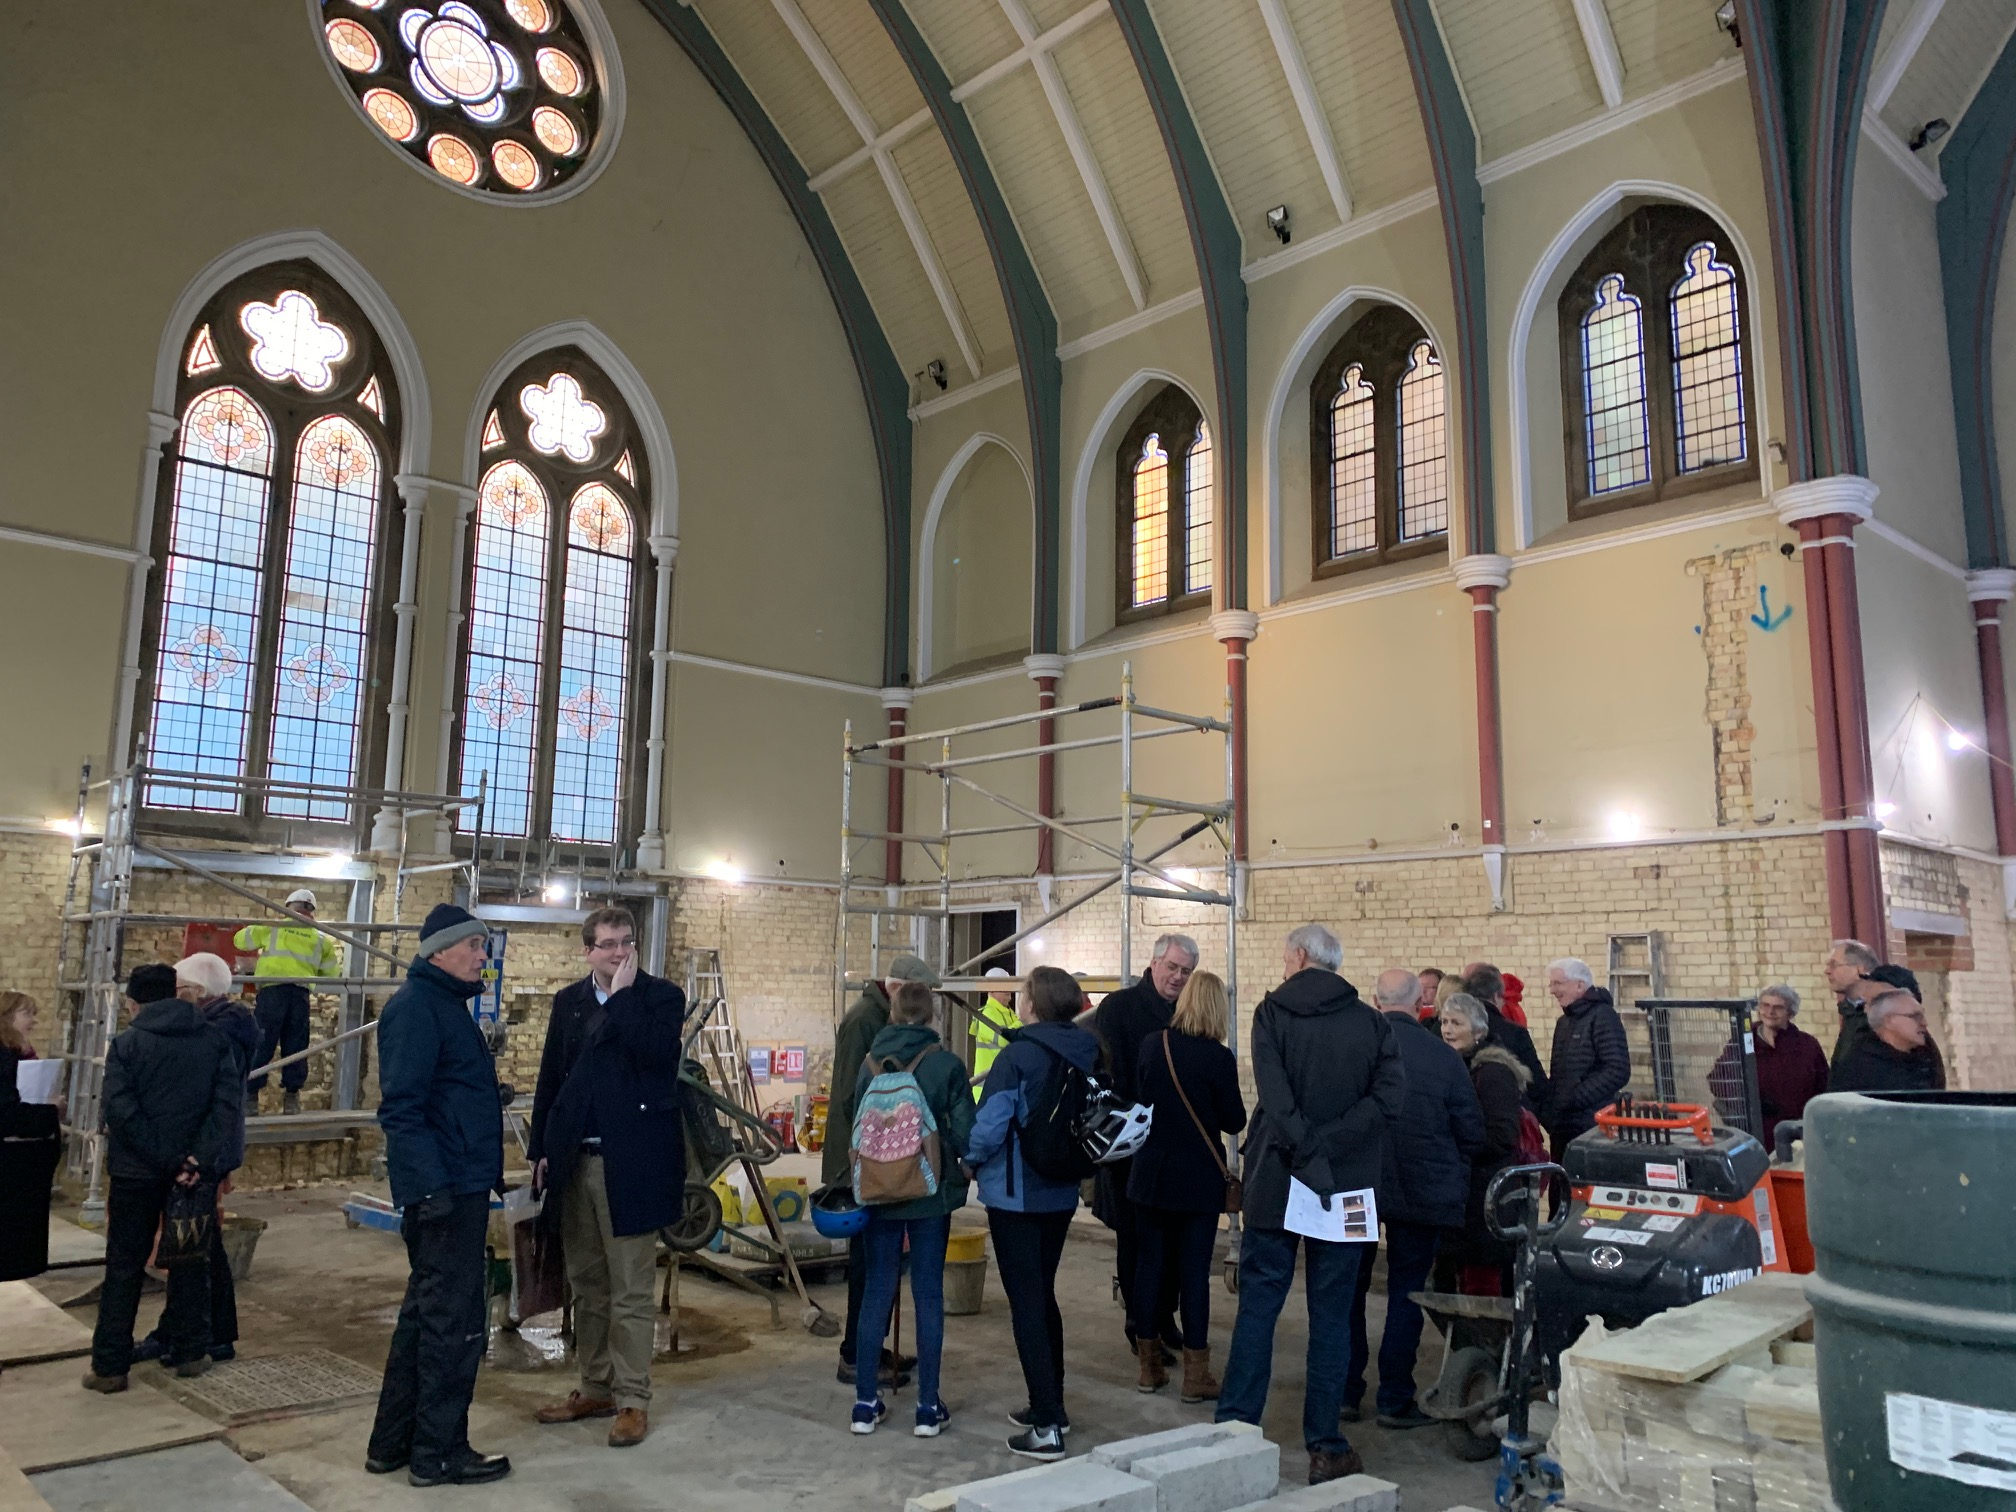 Congregation tour of Downing Place URC Cambridge under construction